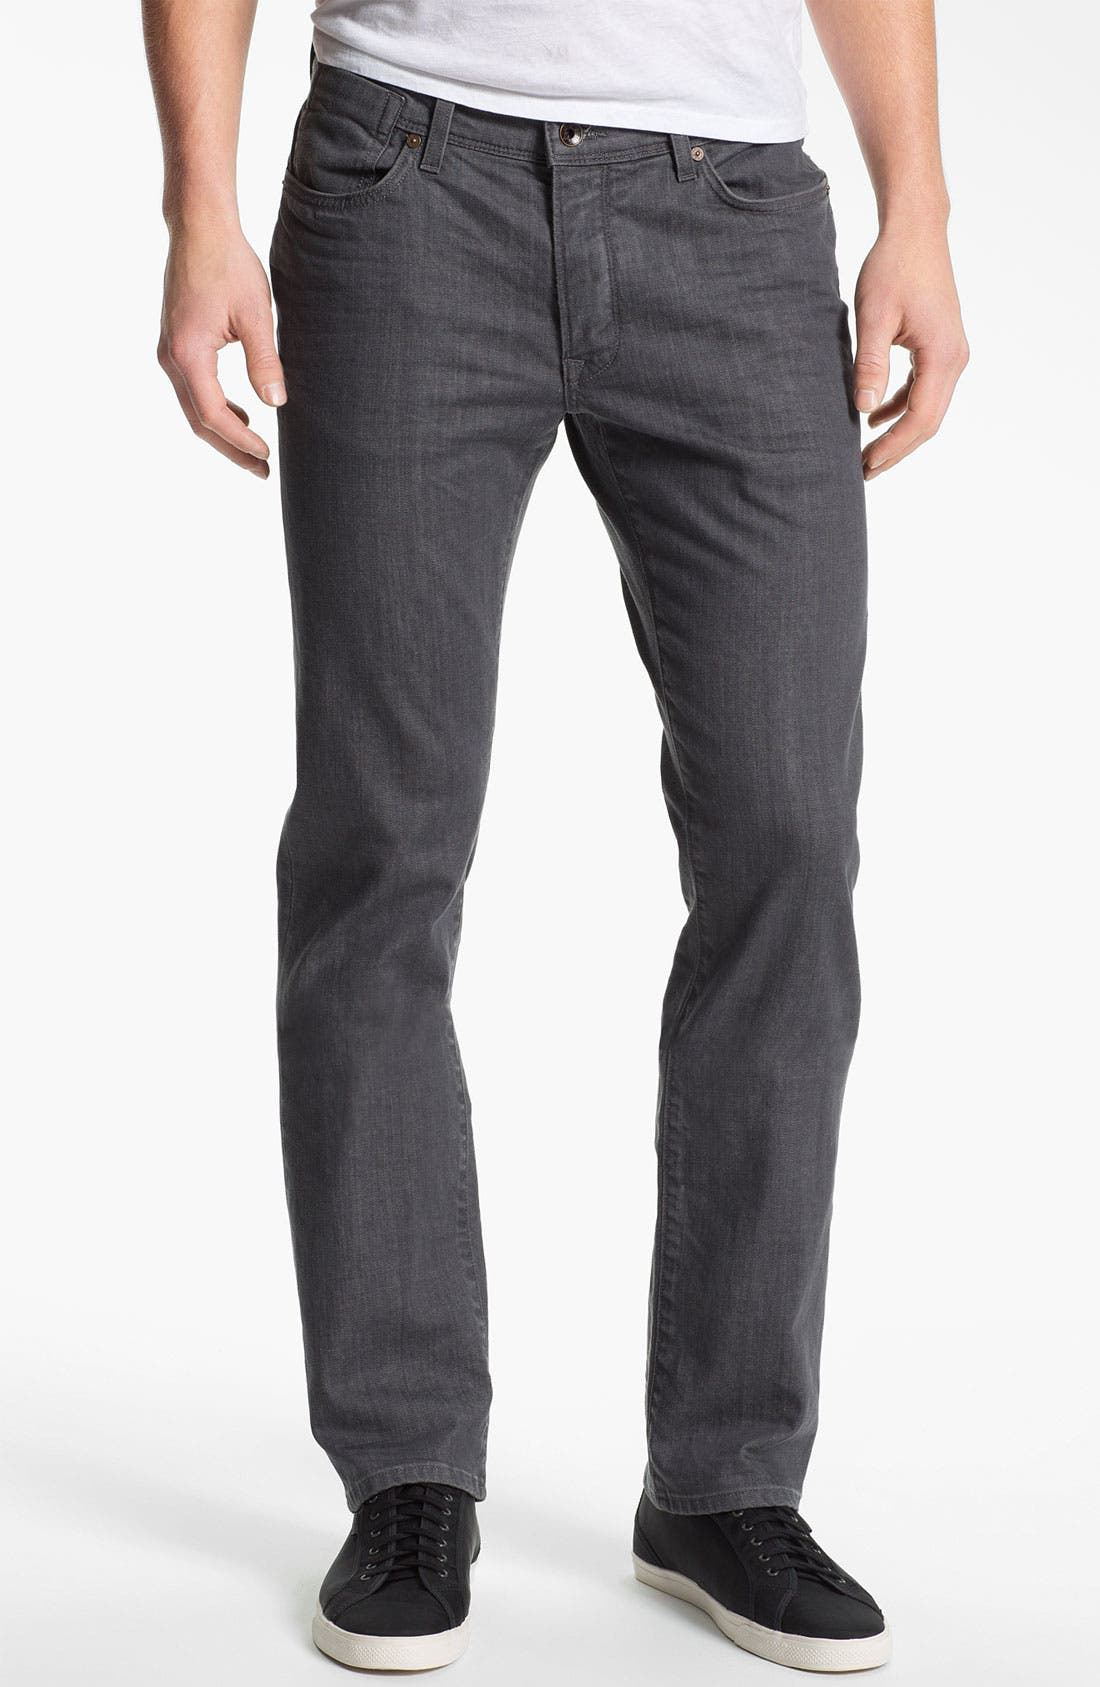 Alternate Image 1 Selected - John Varvatos Star USA 'Bowery' Slim Straight Leg Jeans (Steel Grey)